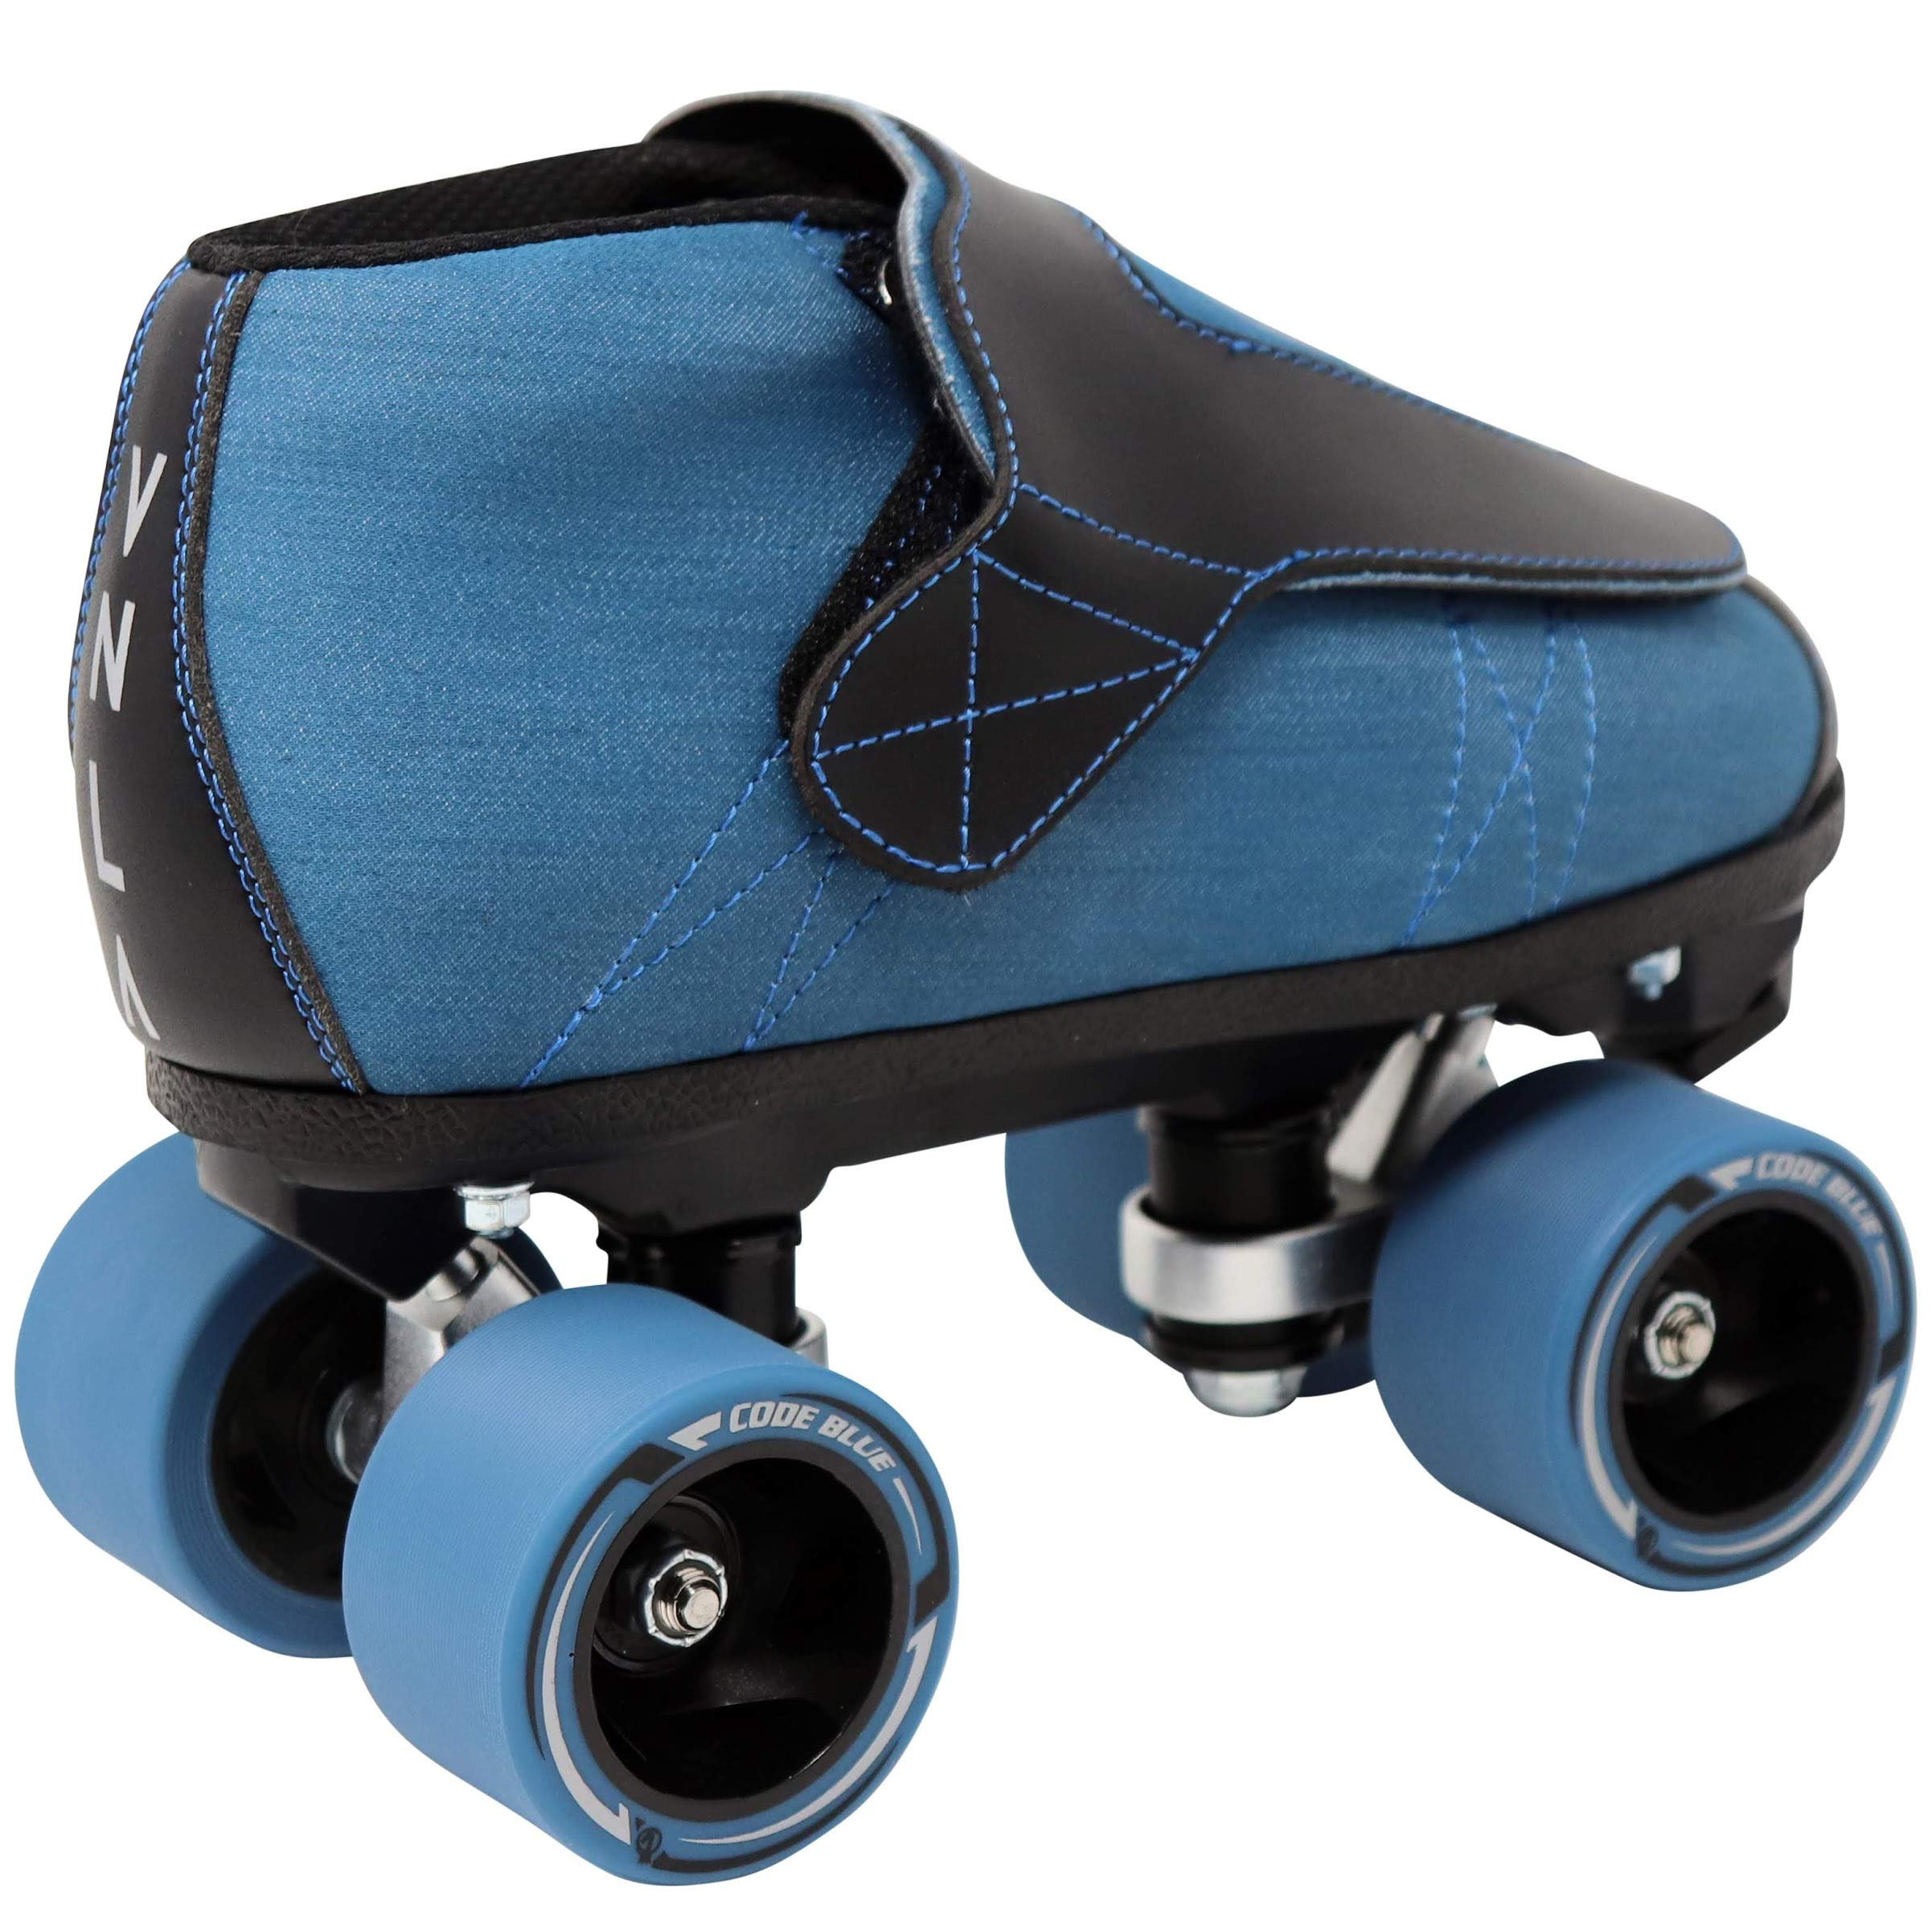 VNLA Code Blue Jam Skate - Mens & Womens Speed Skates - Quad Skates for Women & Men - Adjustable Roller Skate/Rollerskates - Outdoor & Indoor Adult Quad Skate - Kid/Kids Roller Skates (Size 5) by VNLA (Image #3)